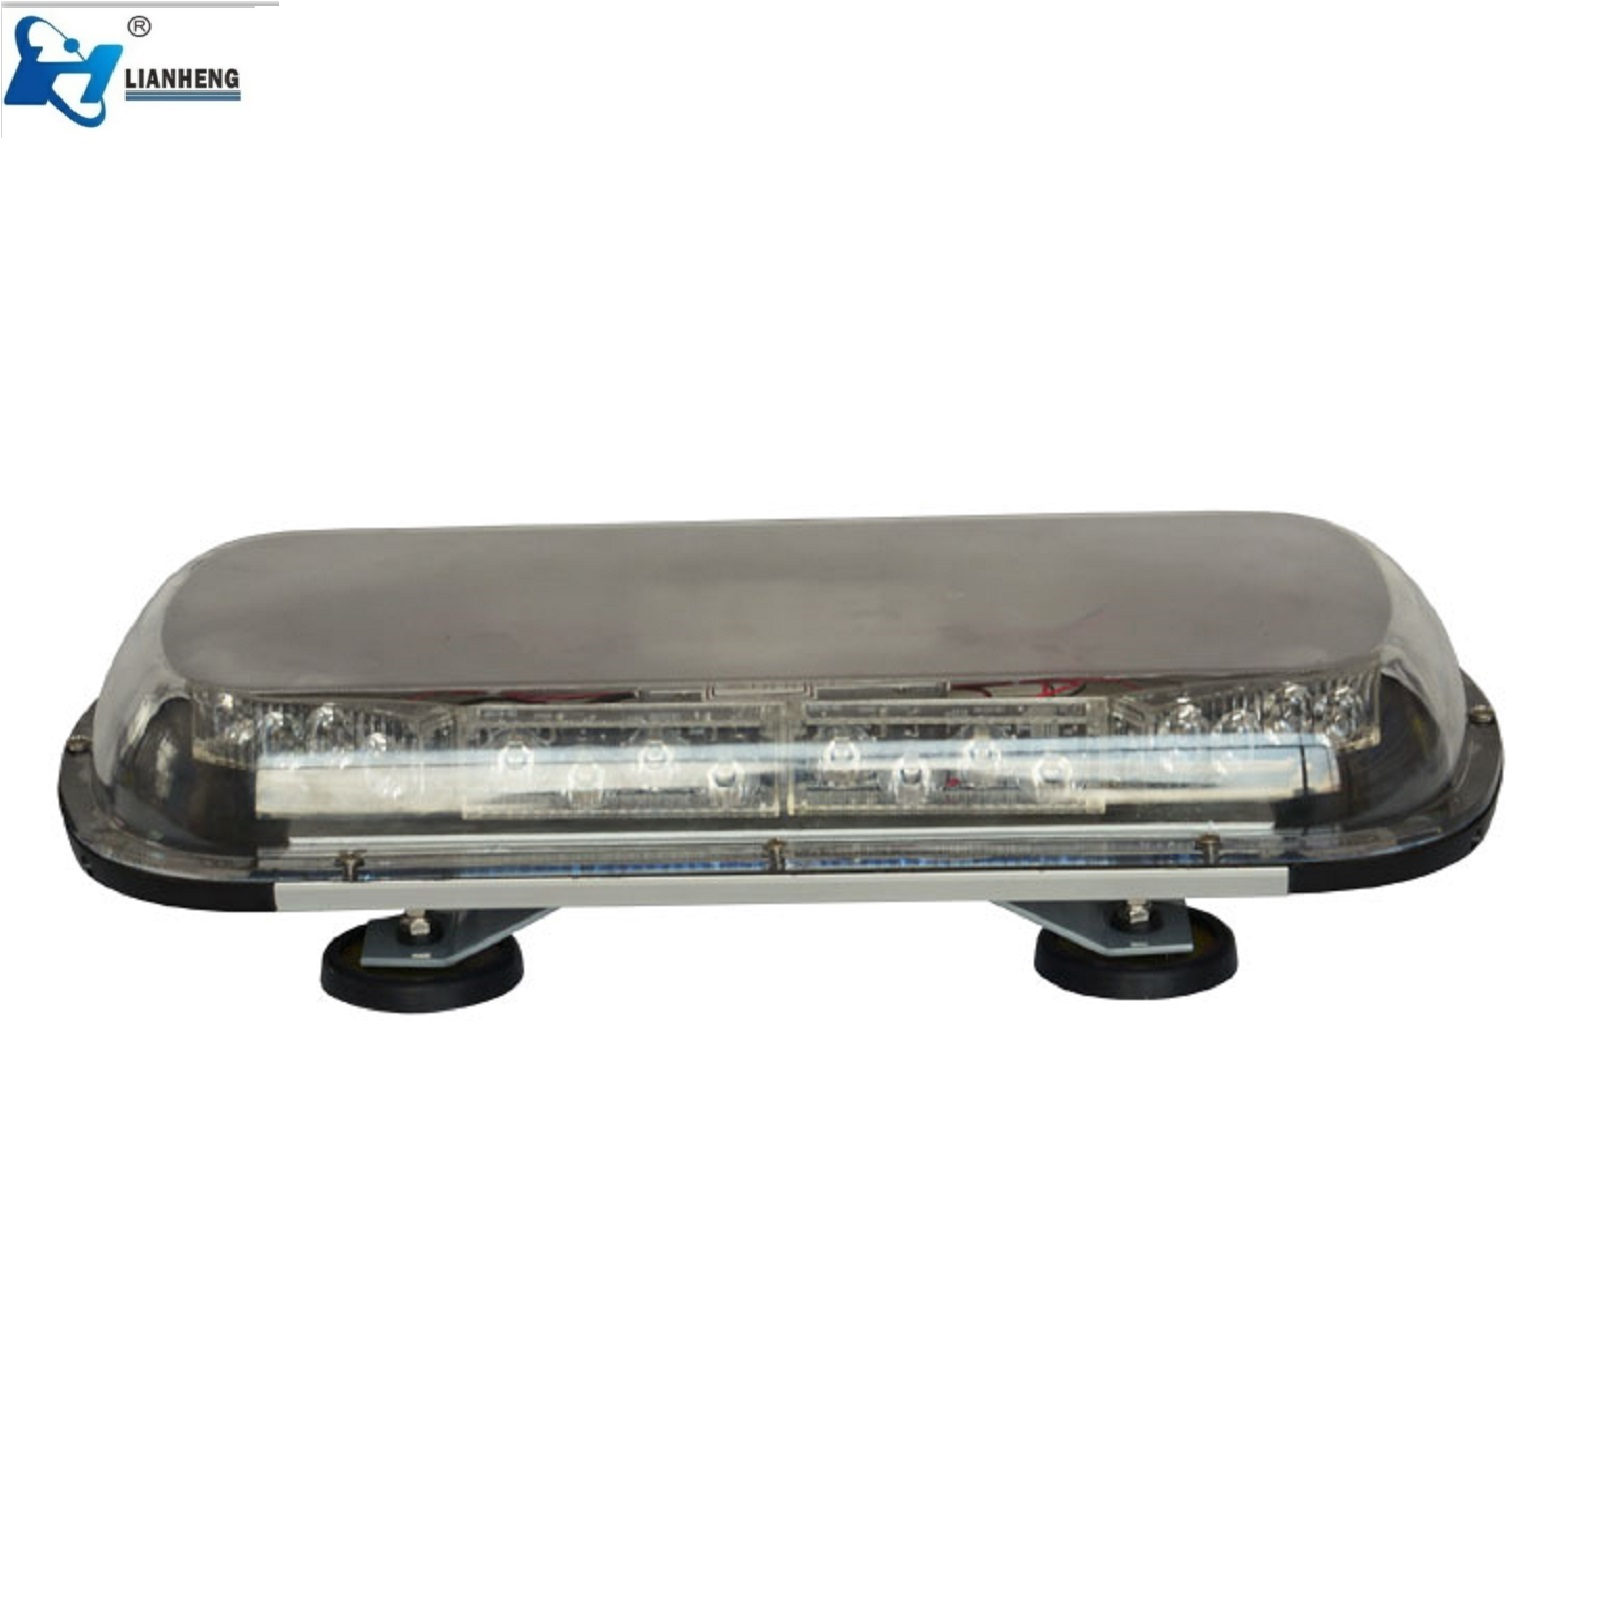 12 V Rosso e Blu Mini bar luce/luce di emergenza bar/barra luminosa a led